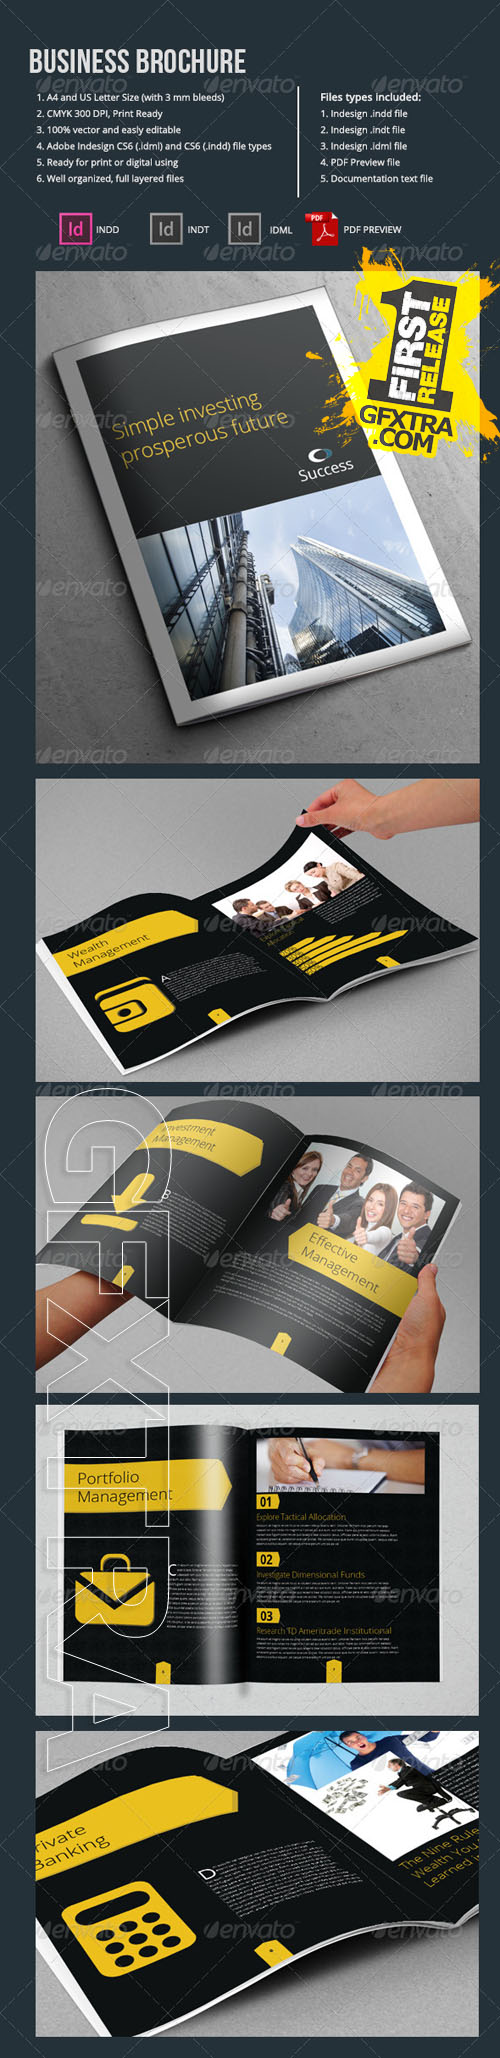 GraphicRiver - A4 Business Brochure Template 10 Pages 6791489